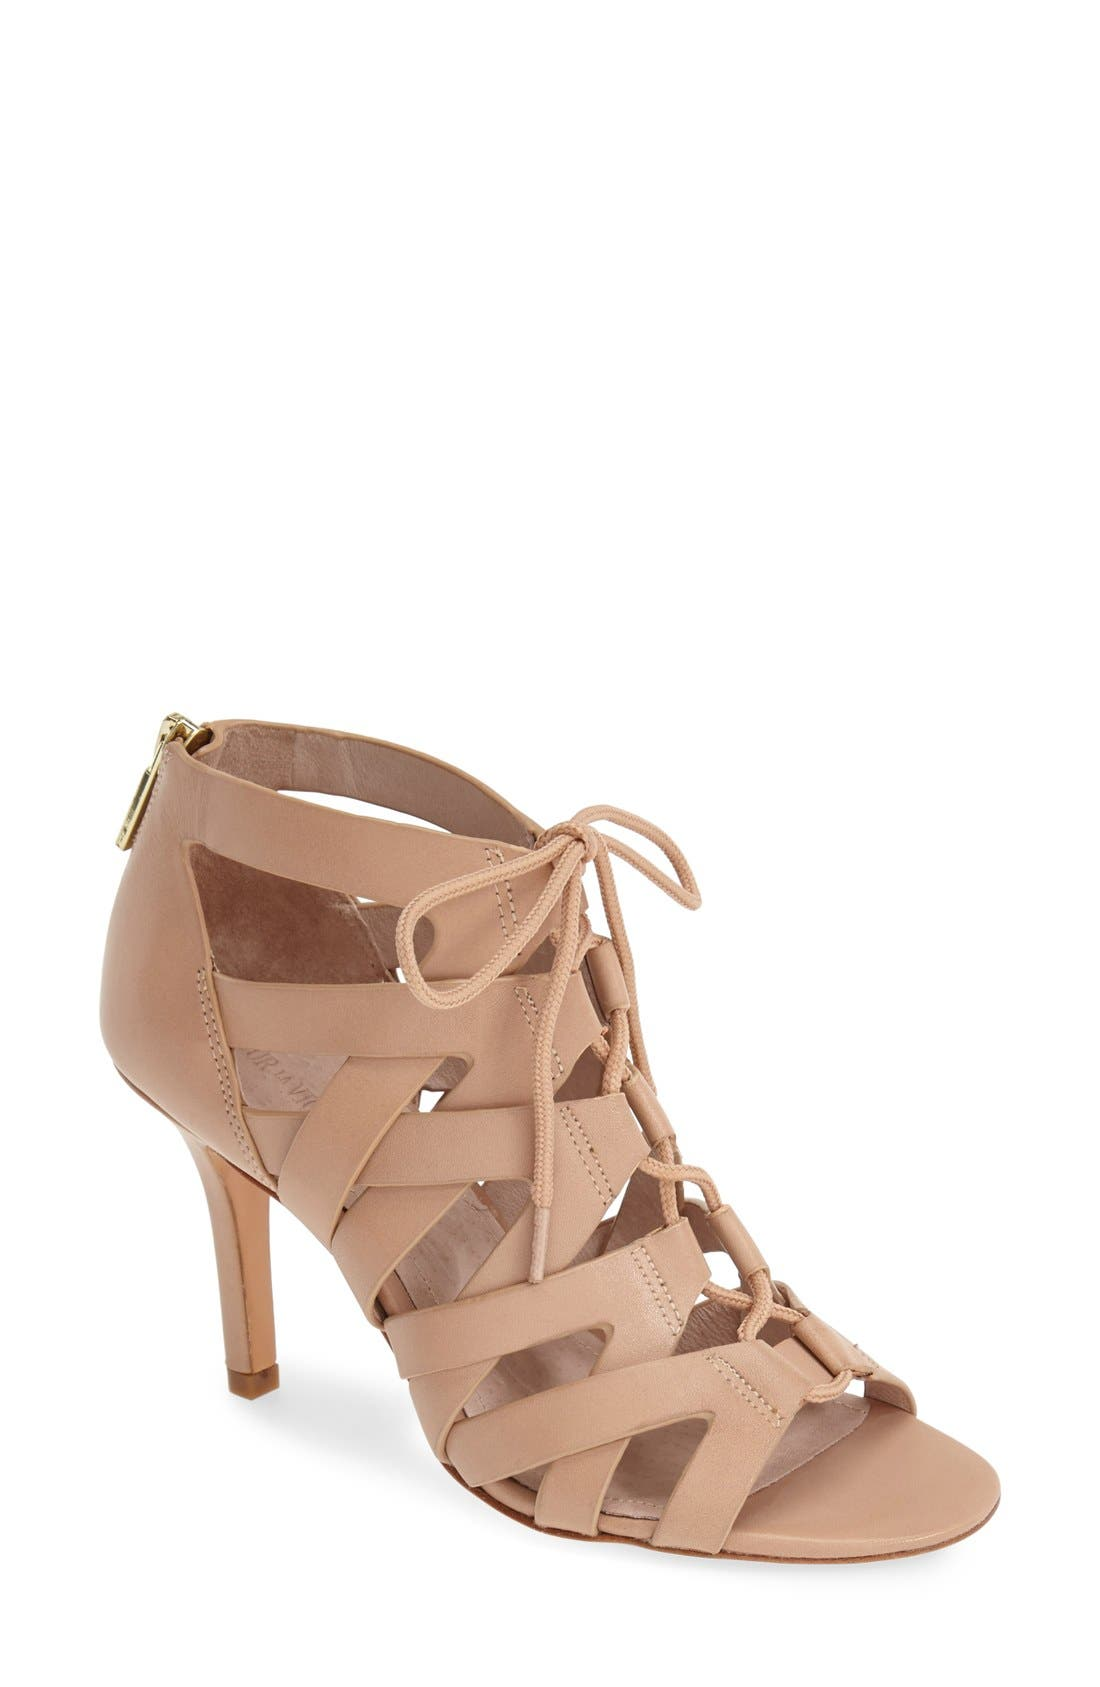 Alternate Image 1 Selected - Pour la Victoire 'Camila' Caged Leather Sandal (Women)